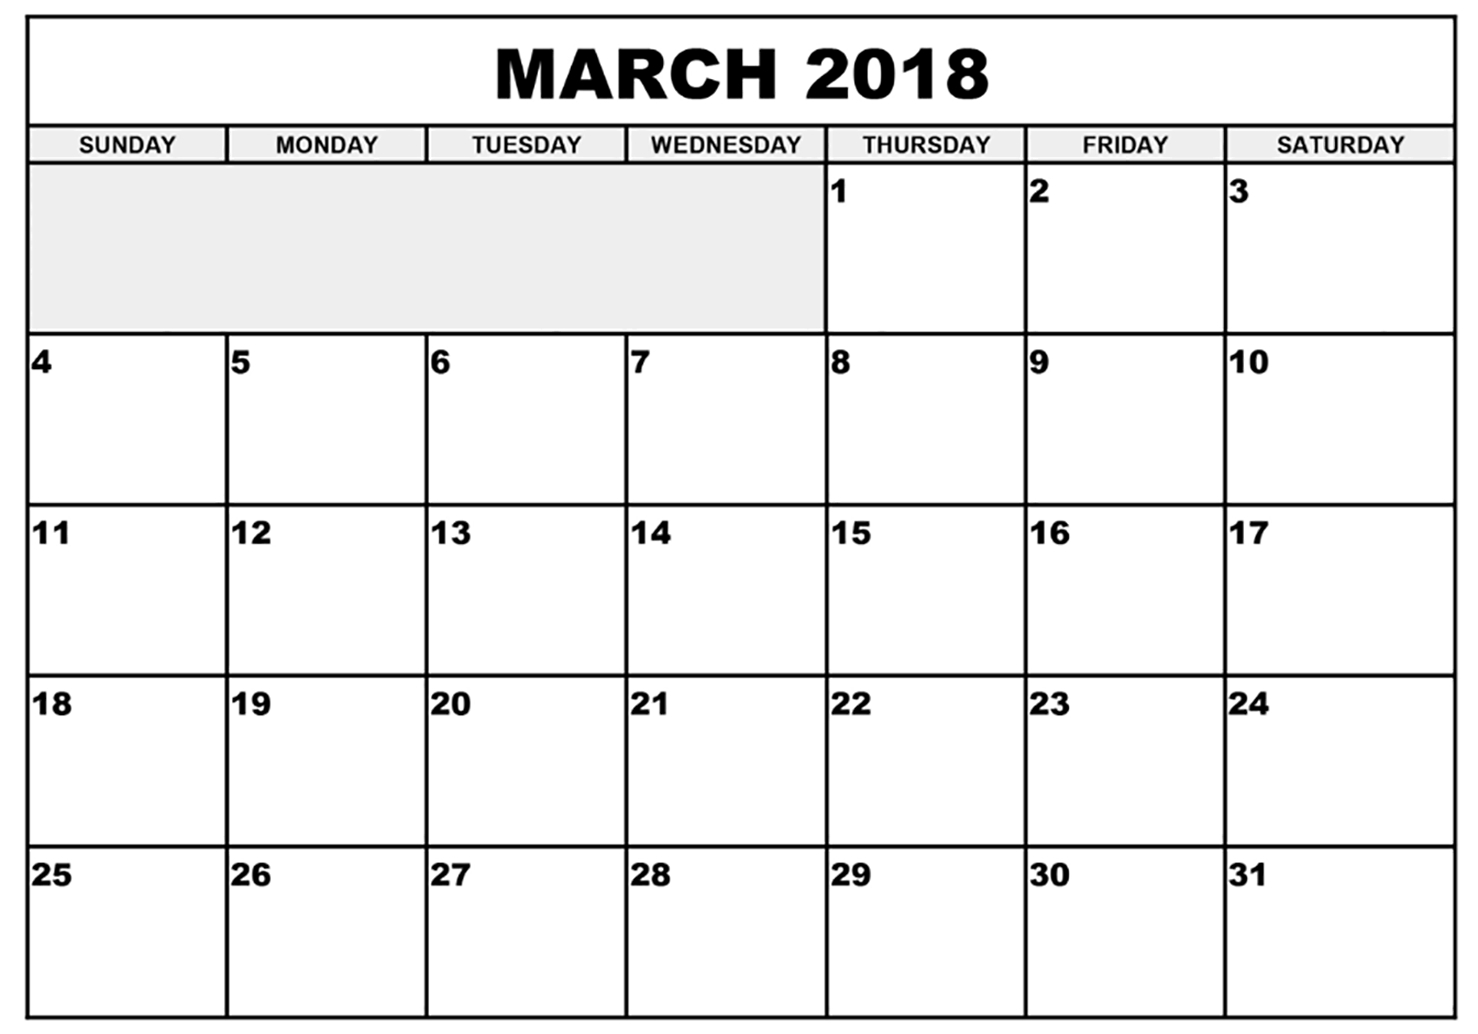 Printable March 2018 Calendar - Printable Monthly Calendar throughout March Calendar Printable Template